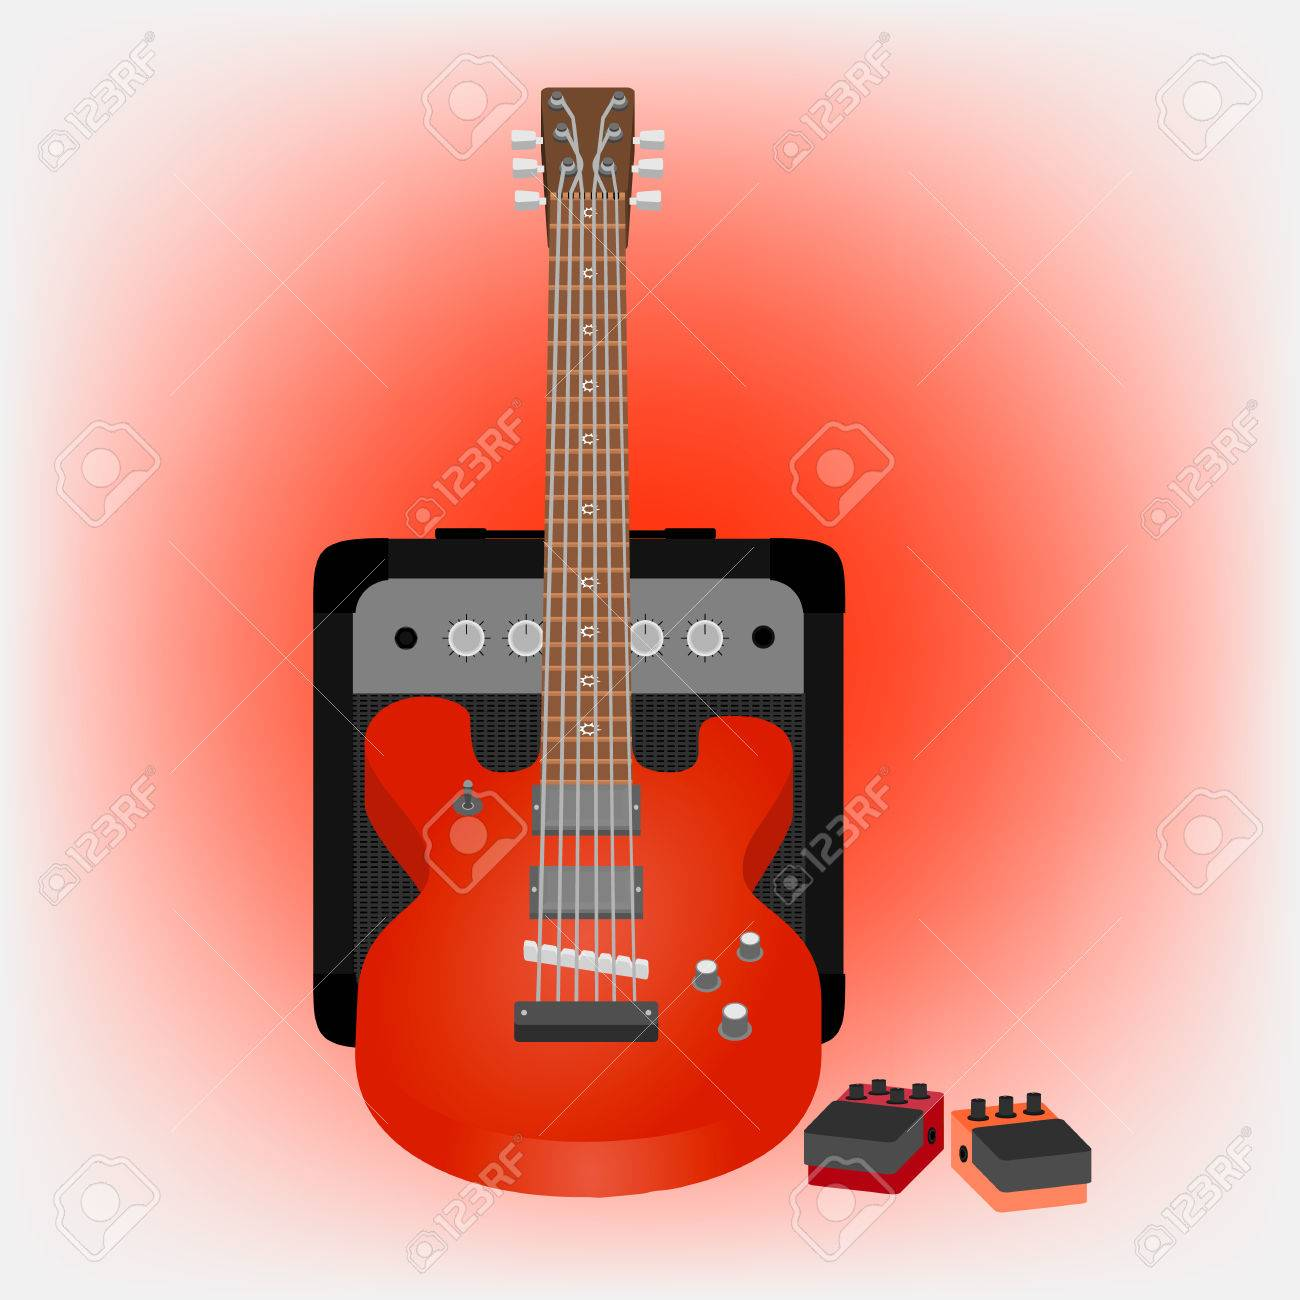 Illustration Of Electric Guitar Amp Pedals Stock Vector